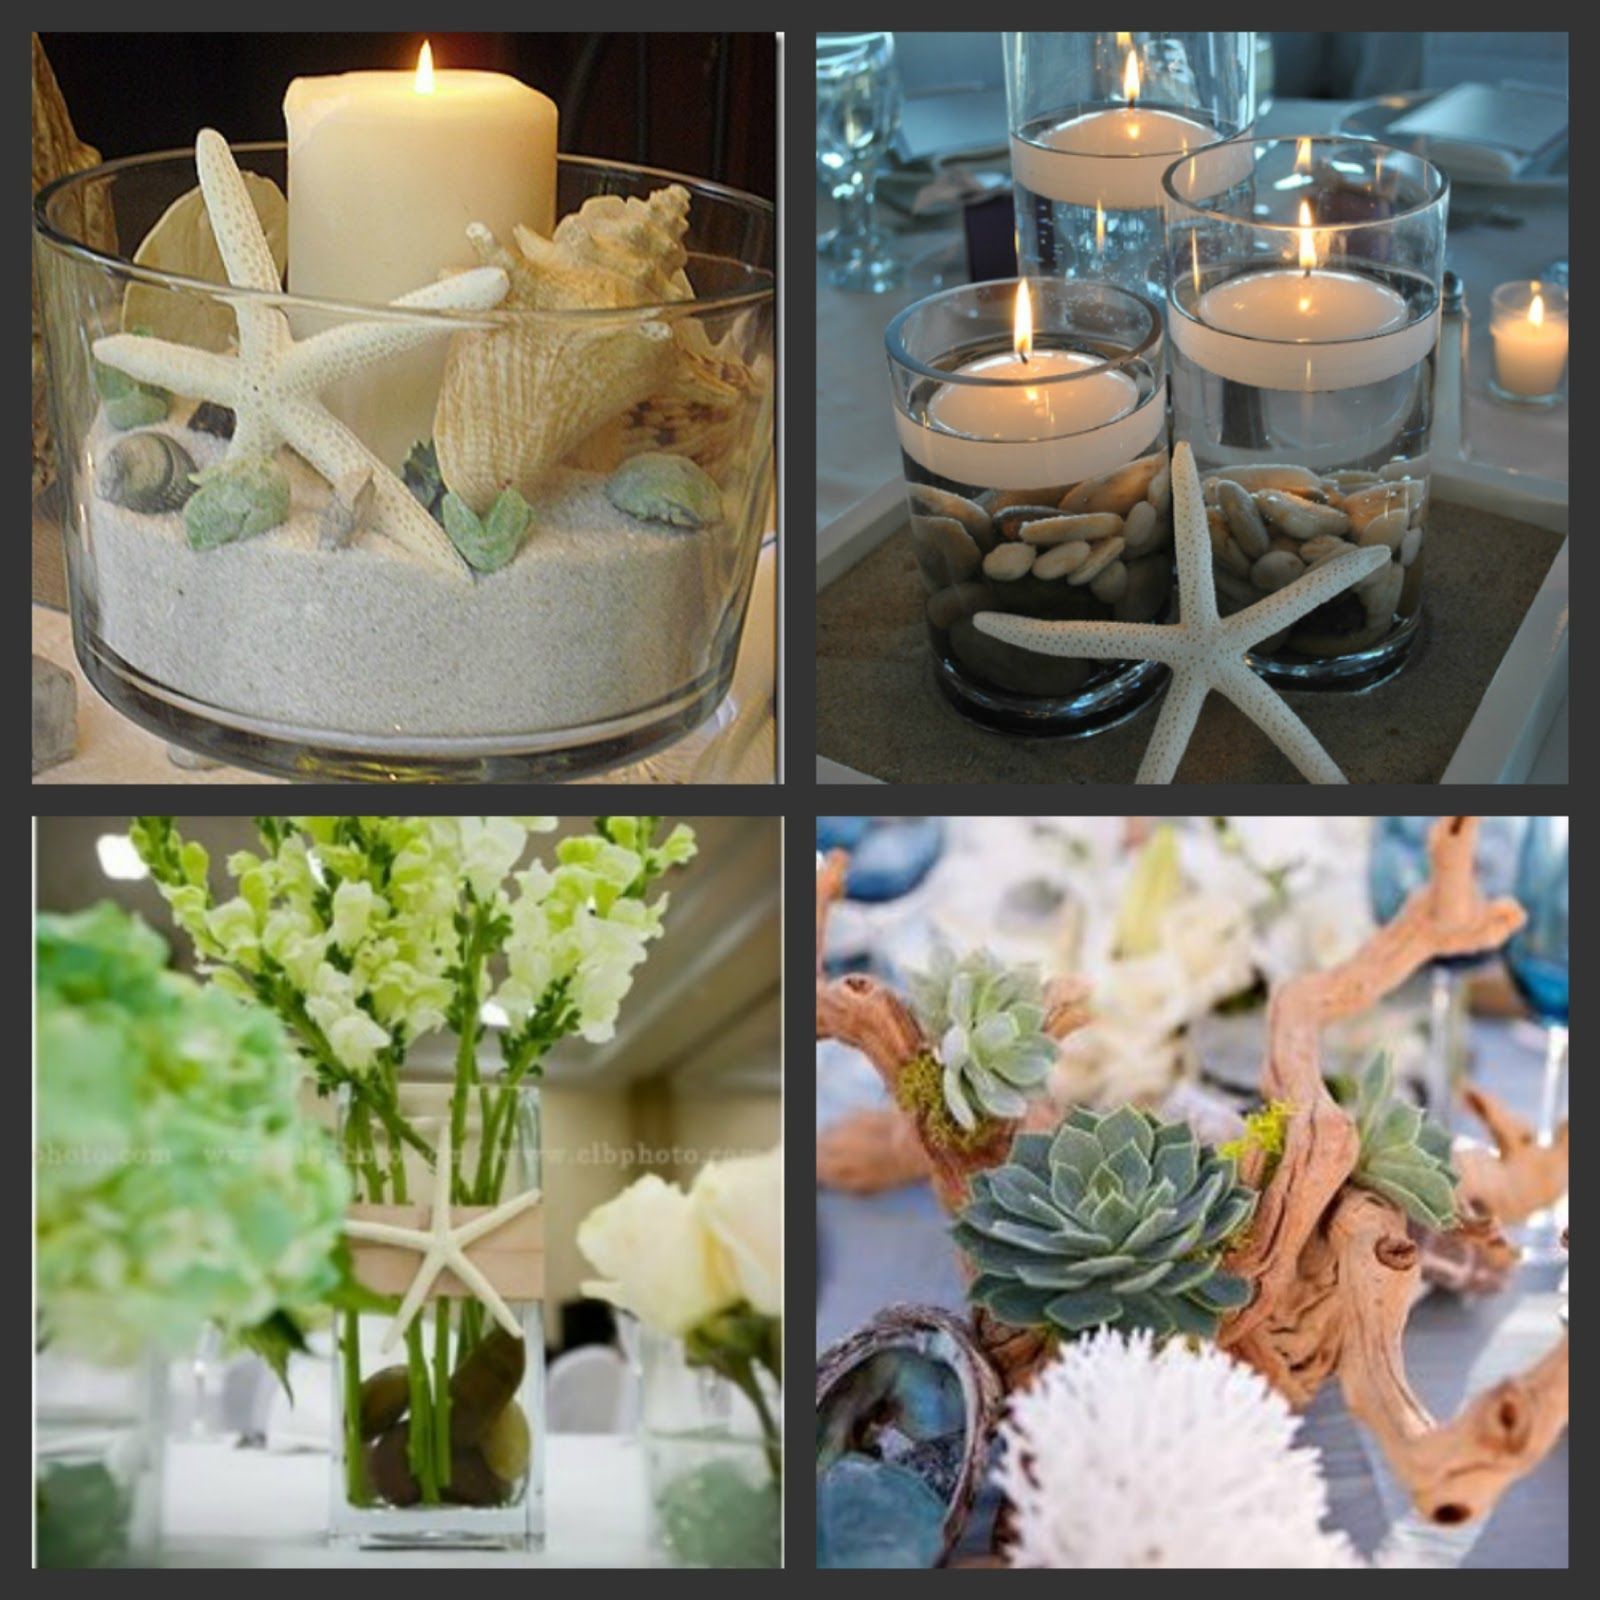 beach theme bridal shower centerpiece ideas weddings are fun blog rh pinterest com Beach Wedding Center Table Arrangements Beach Wedding Center Table Arrangements